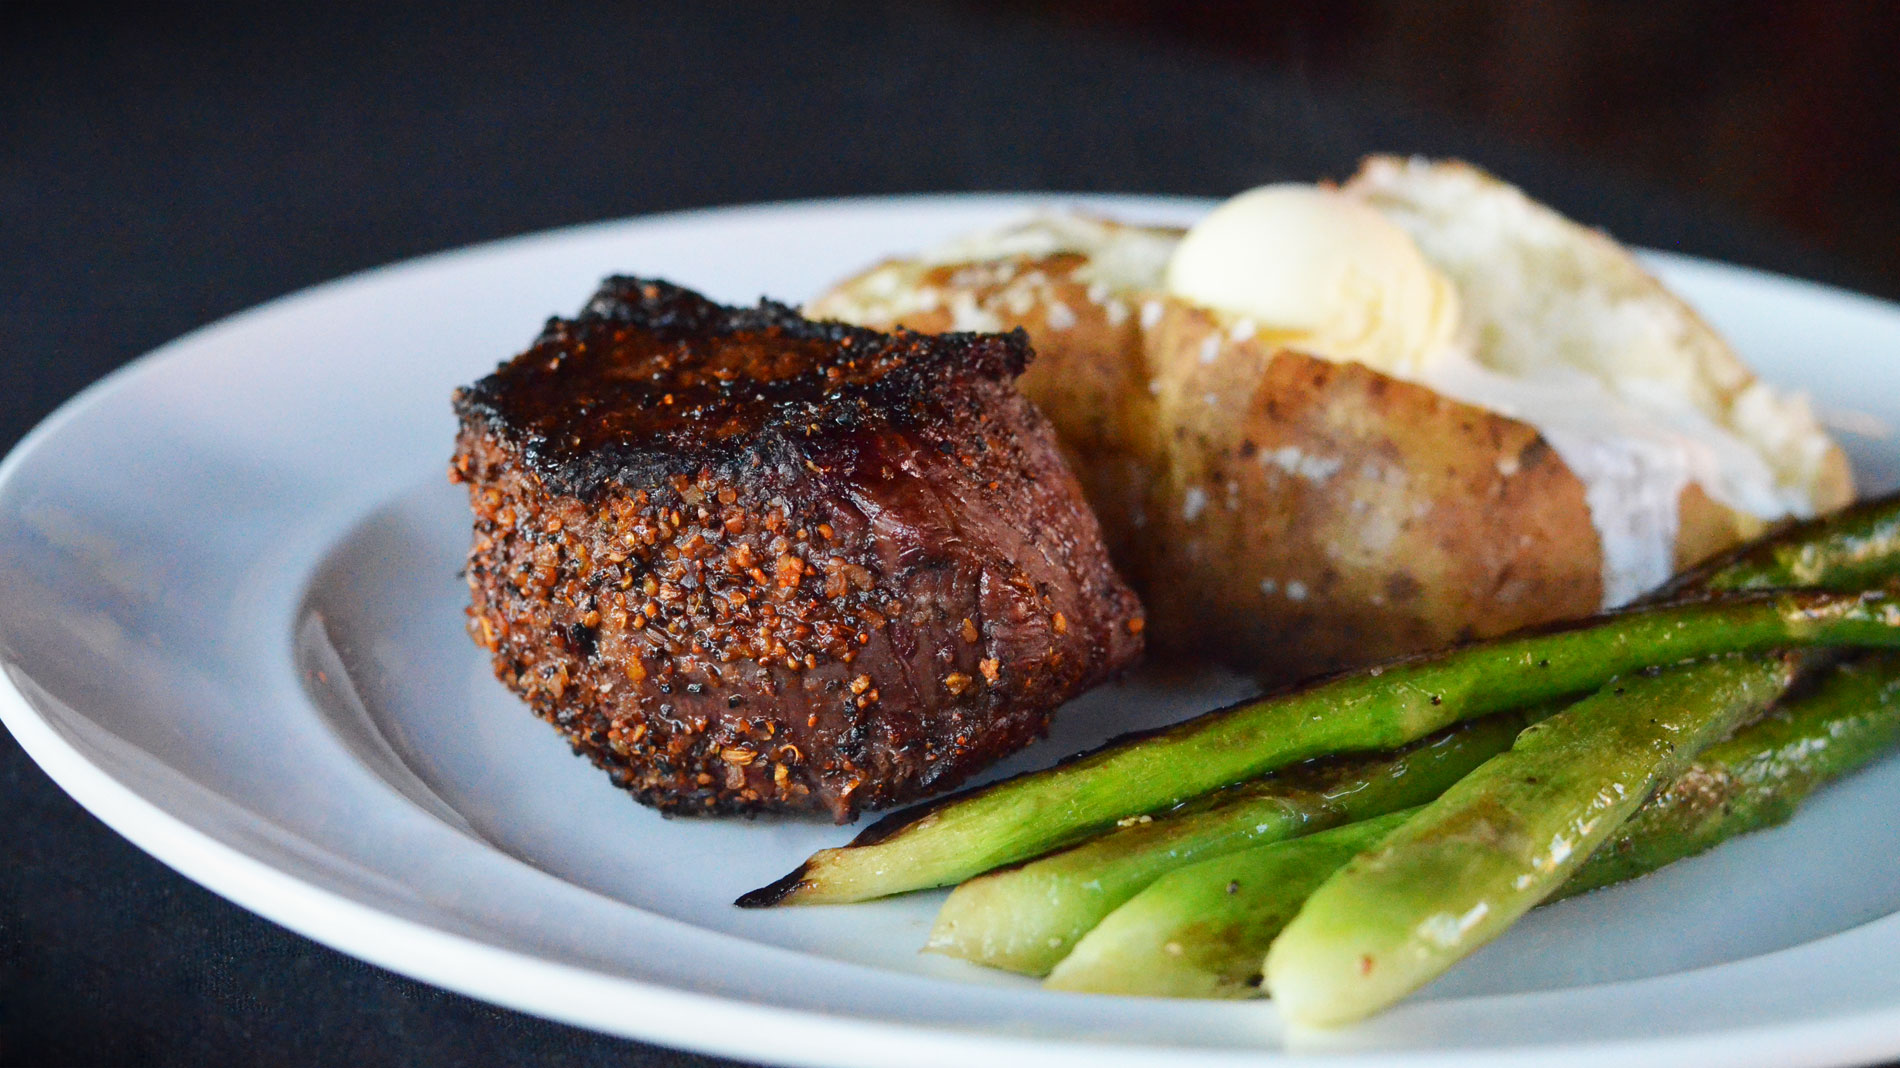 First Look: Hamilton's Urban Steakhouse & Bourbon Bar in Lafayette Square